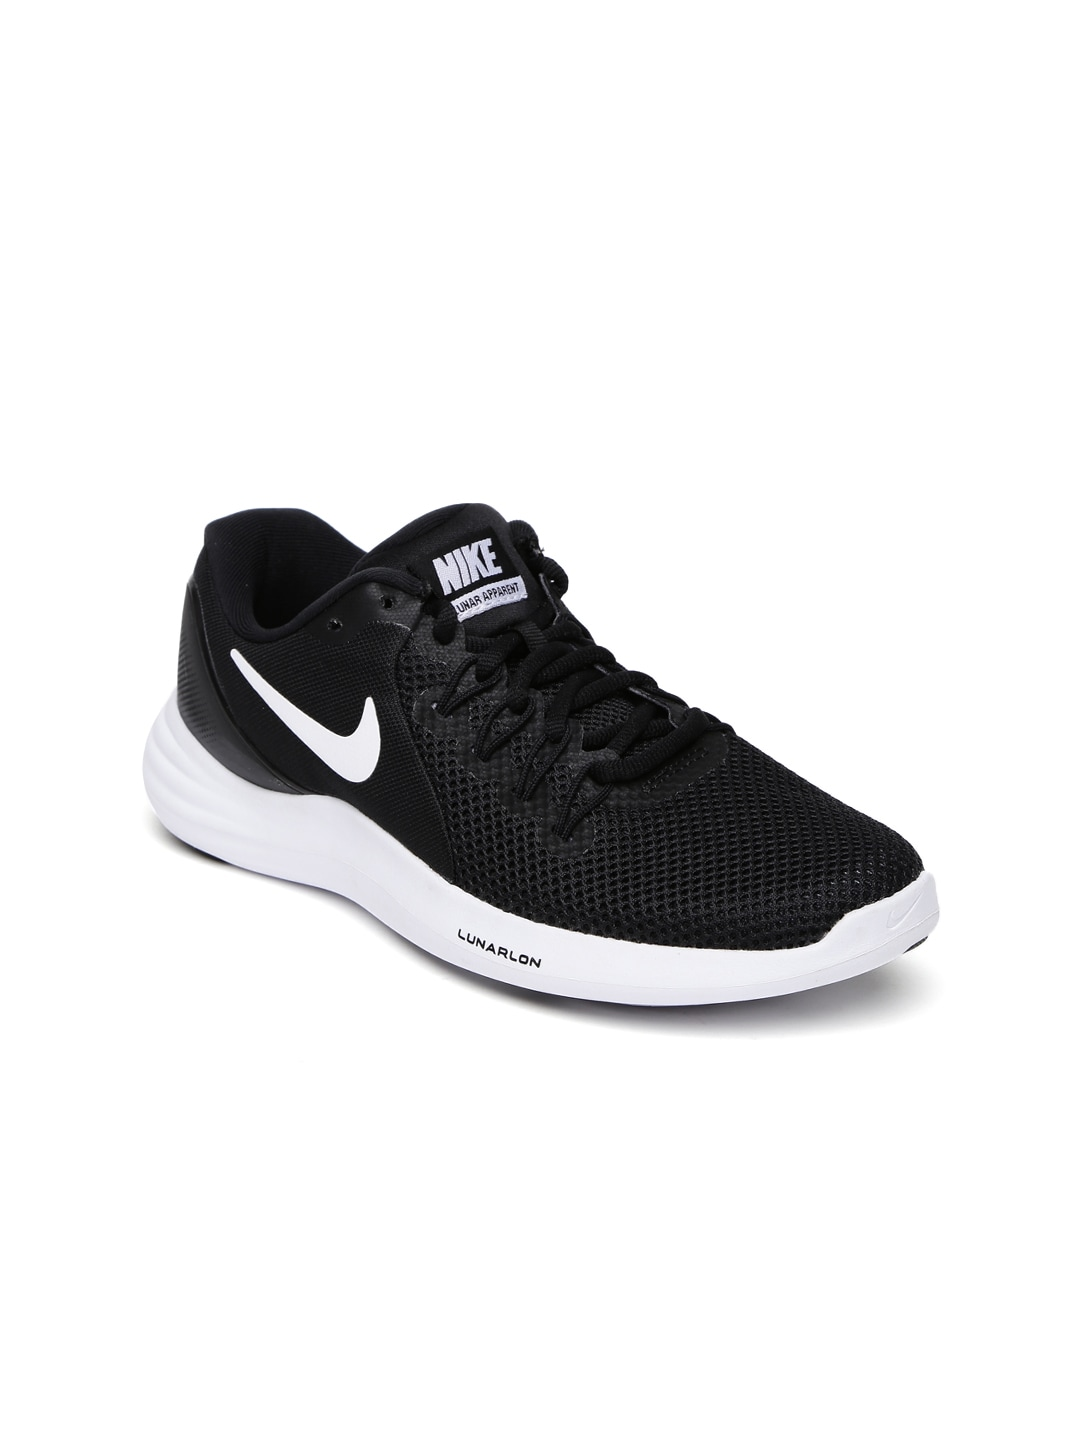 quality design 48264 44aed Buy Women s Nike Air Relentless 6 Running Shoe - Sports Shoes for ...